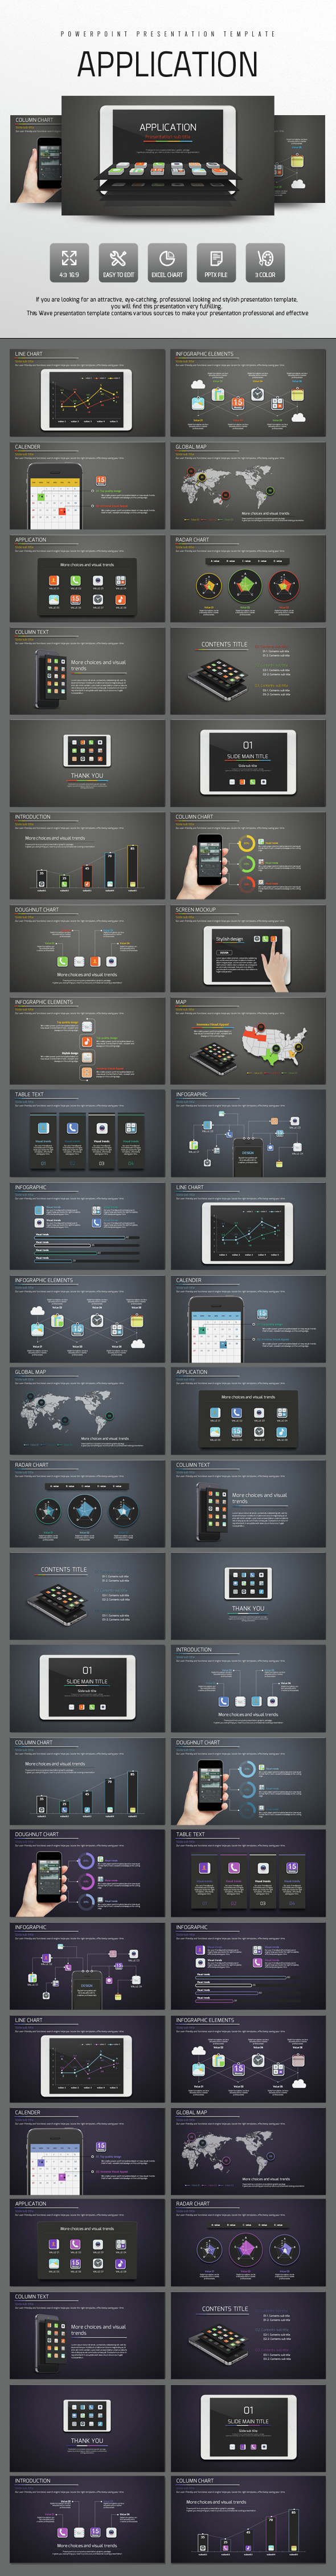 Application - PowerPoint Templates Presentation Templates